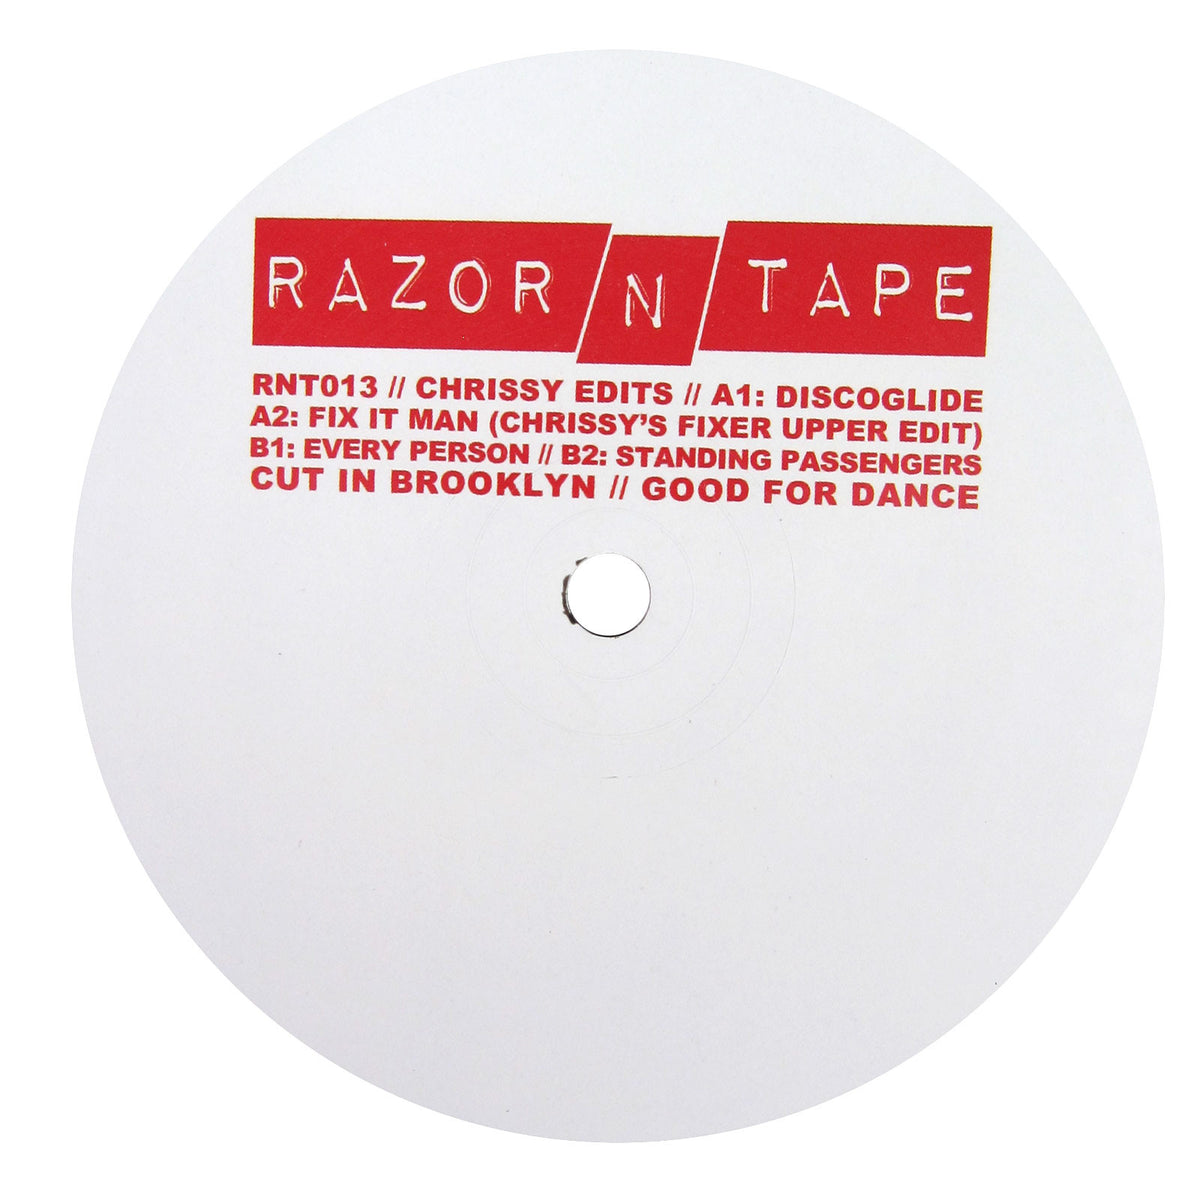 Chrissy: Razor N Tape Edits (Double Exposure, Ragtyme) Vinyl 12""